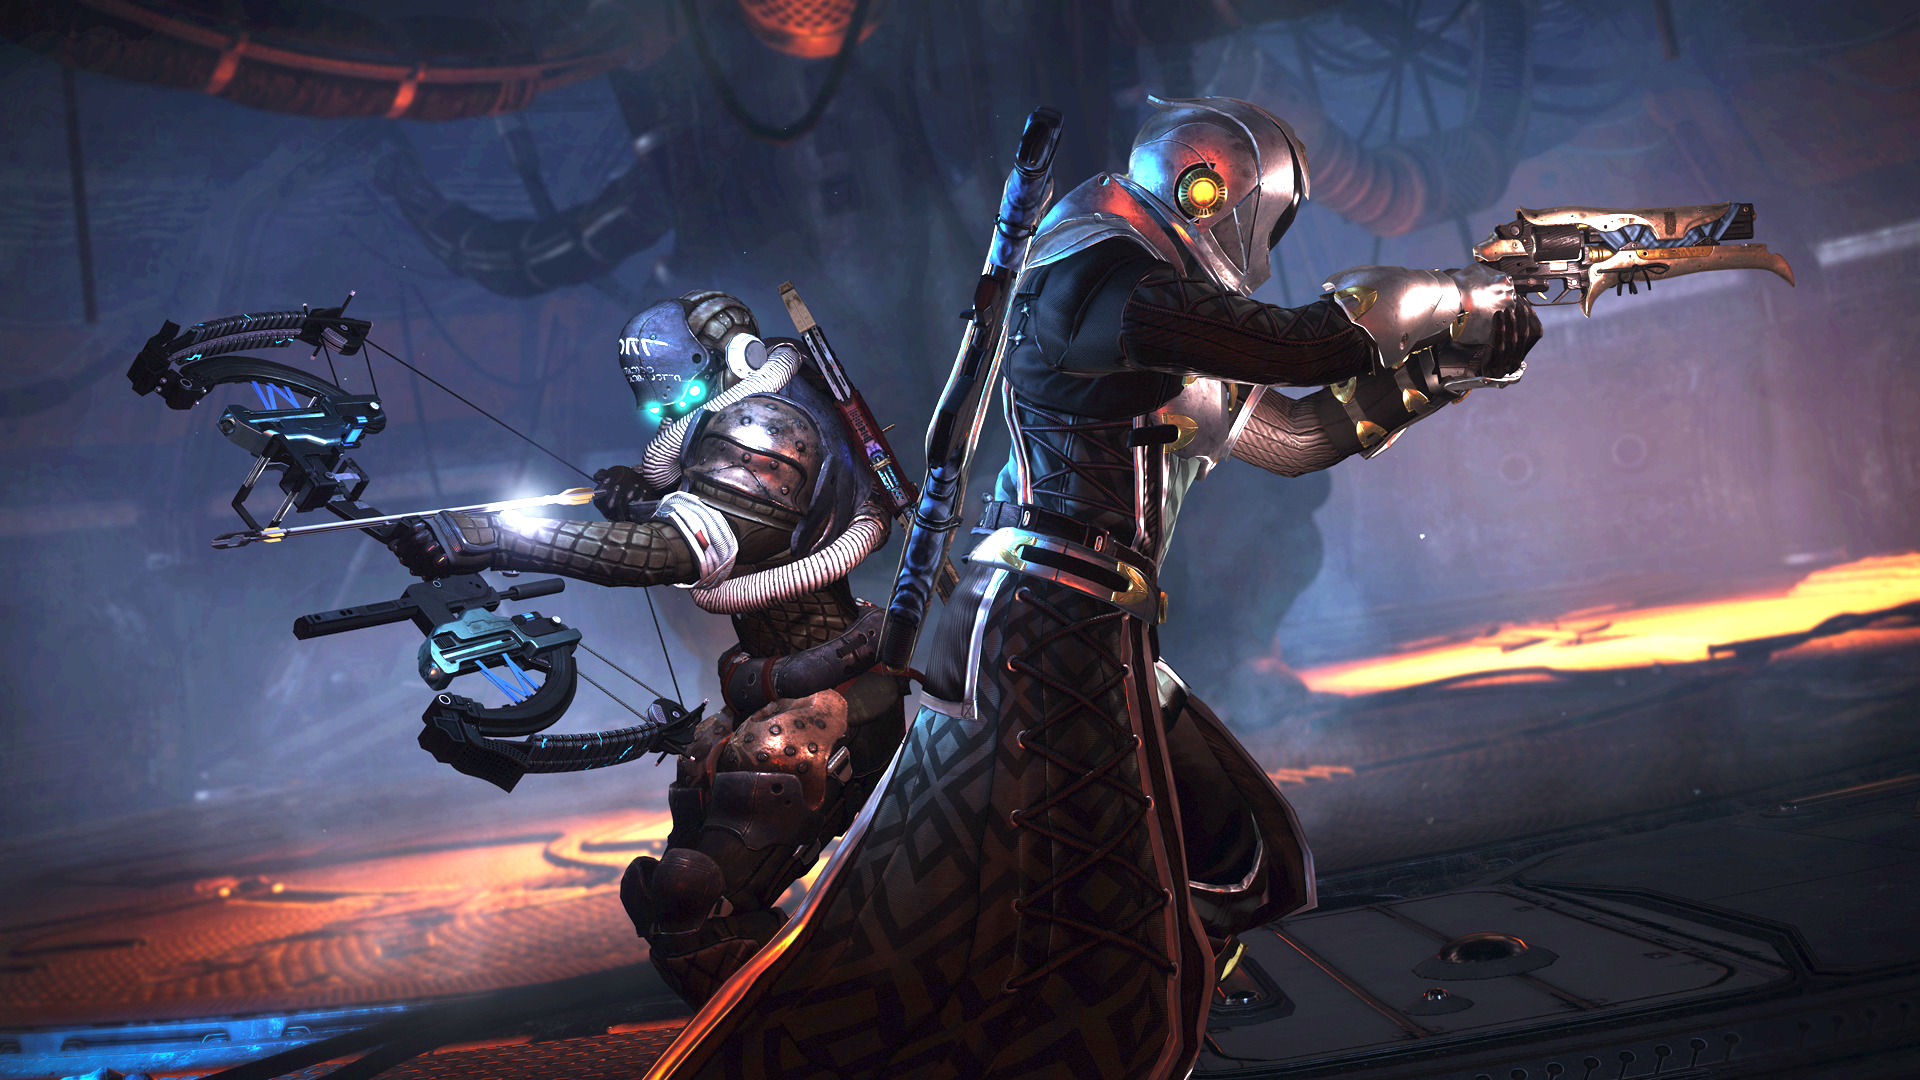 Destiny 2' Season 5 Start Date, Theme, and What We Know About New